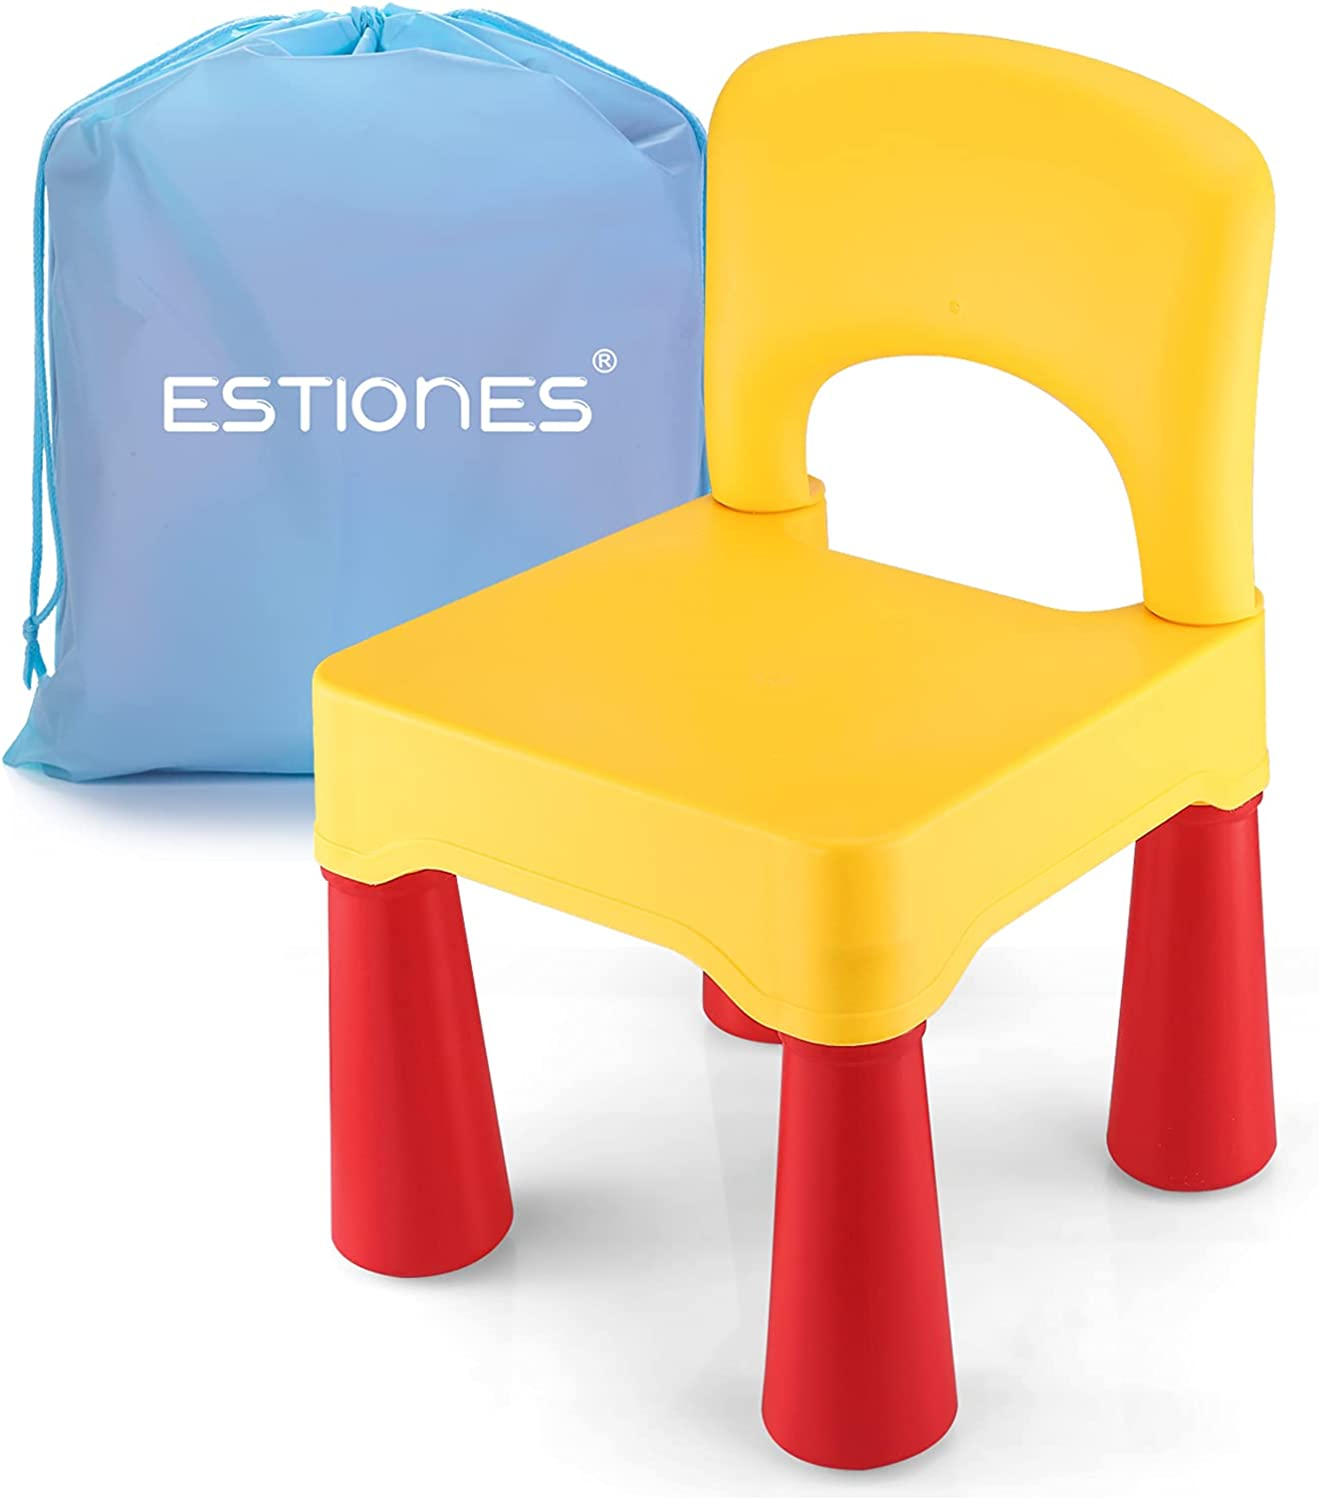 ESTIONES Kids Chair, Toddler Chair, Toddler Chairs for Boys and Girls, an Extra Portable Storage Bag, Ergonomic Design, Environmentally Friendly Durable Plastic, (Lemon Yellow)